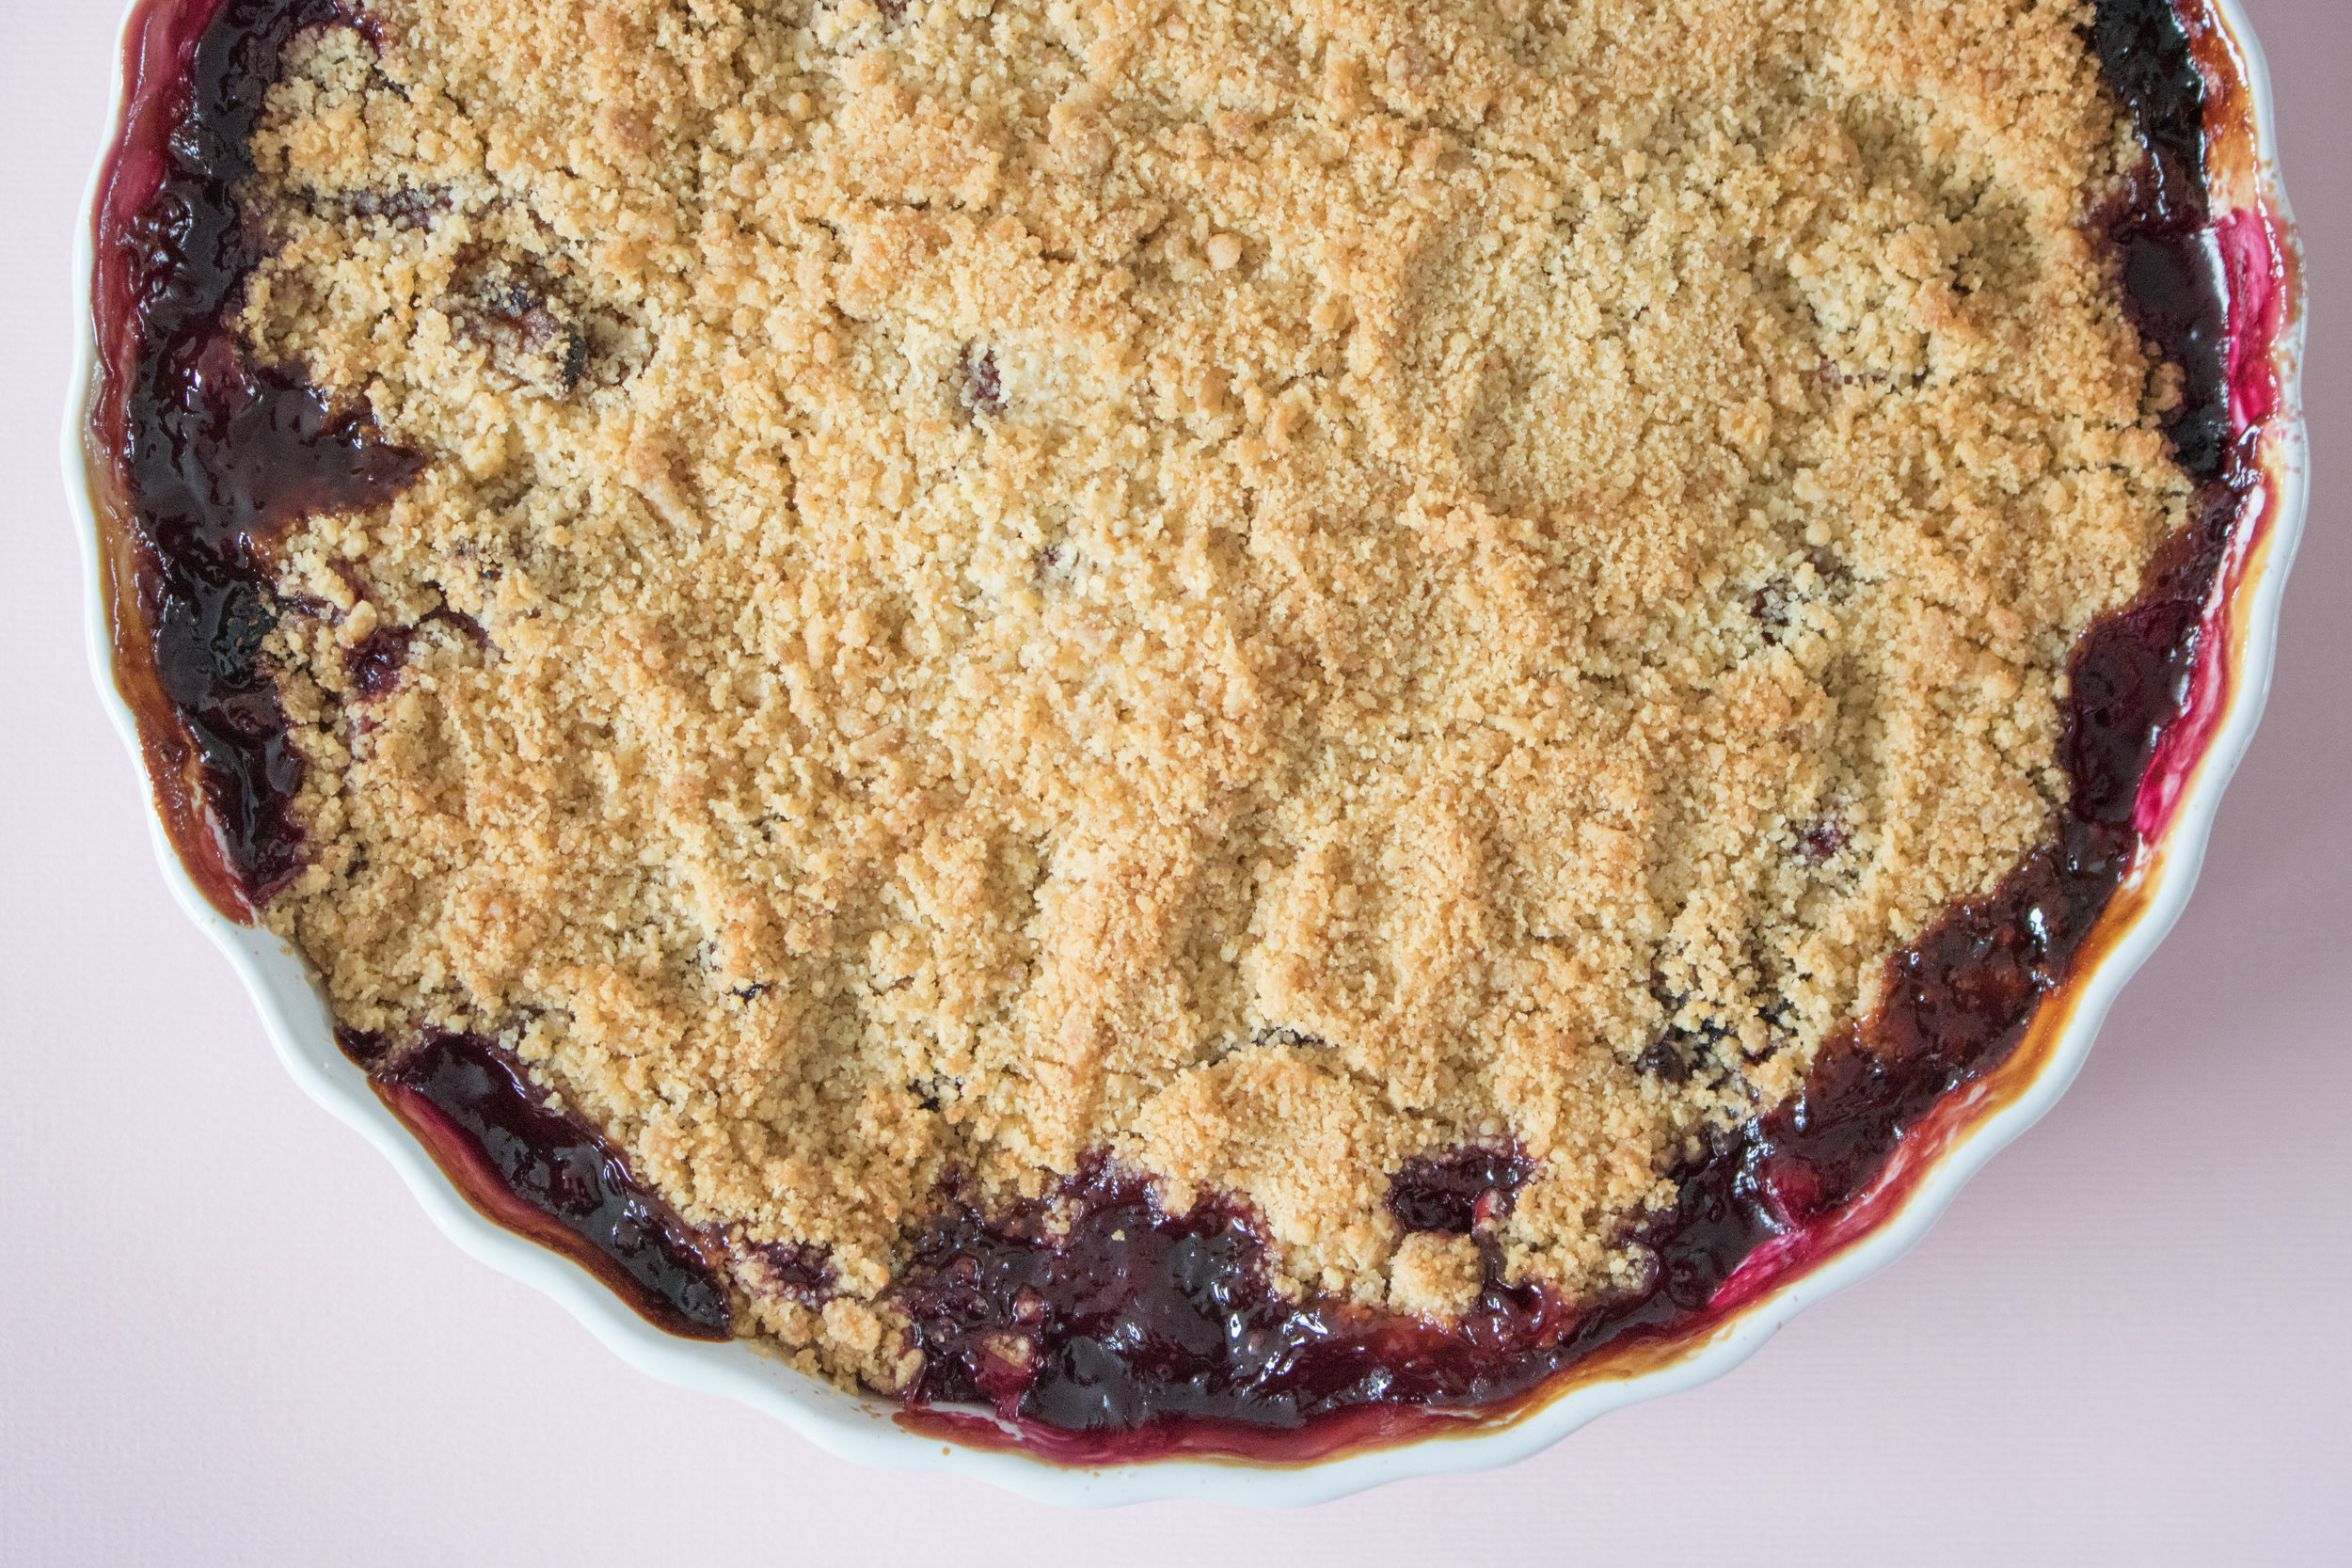 Summer Berry Crumble